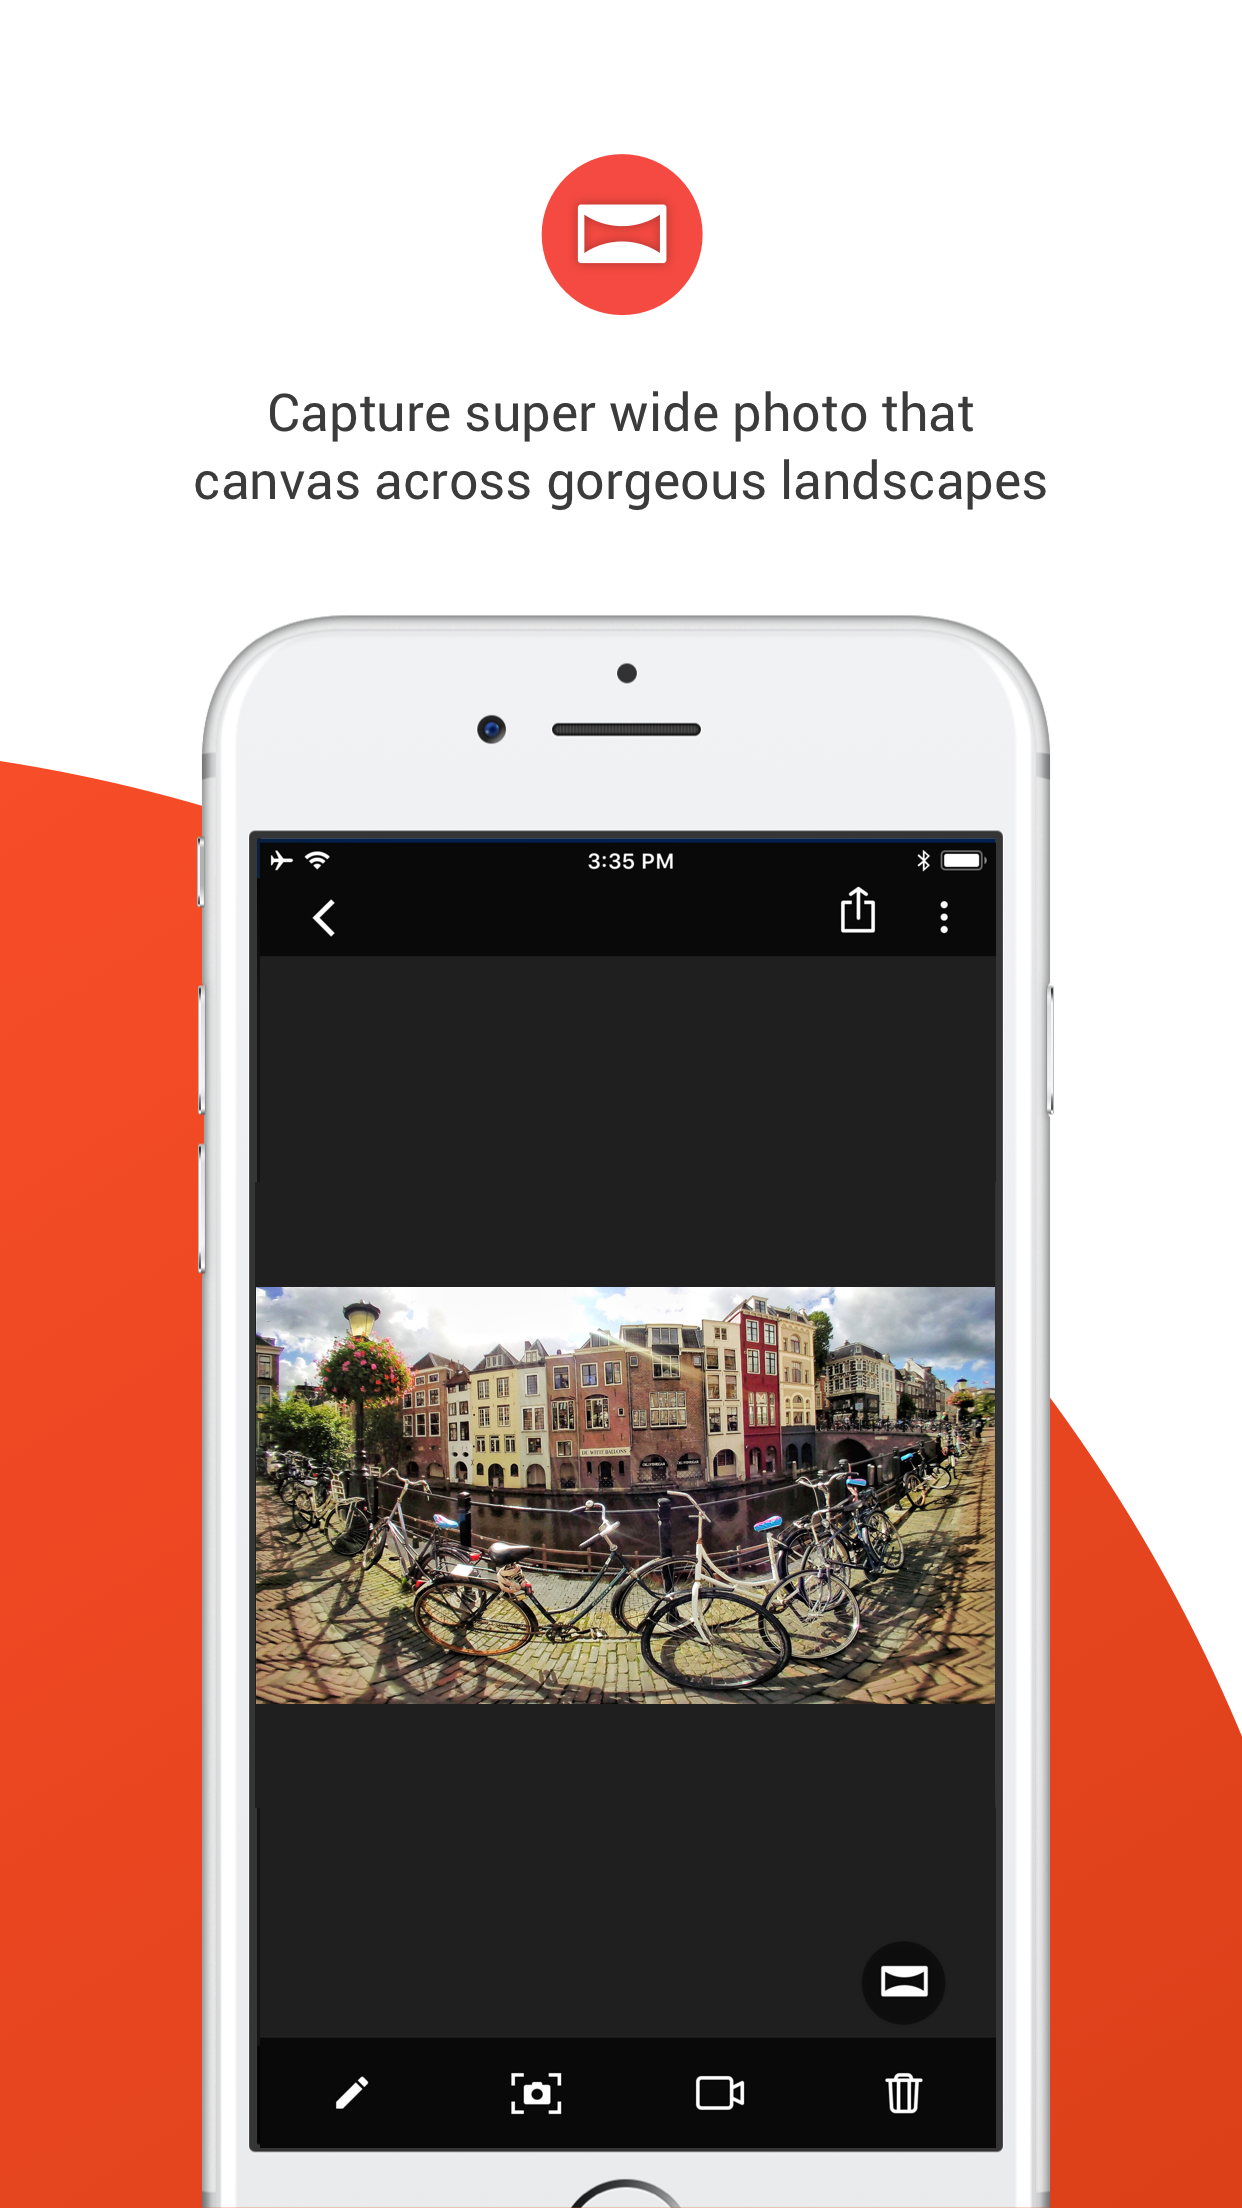 Capture super wide photo that canvas across gorgeous landscapes